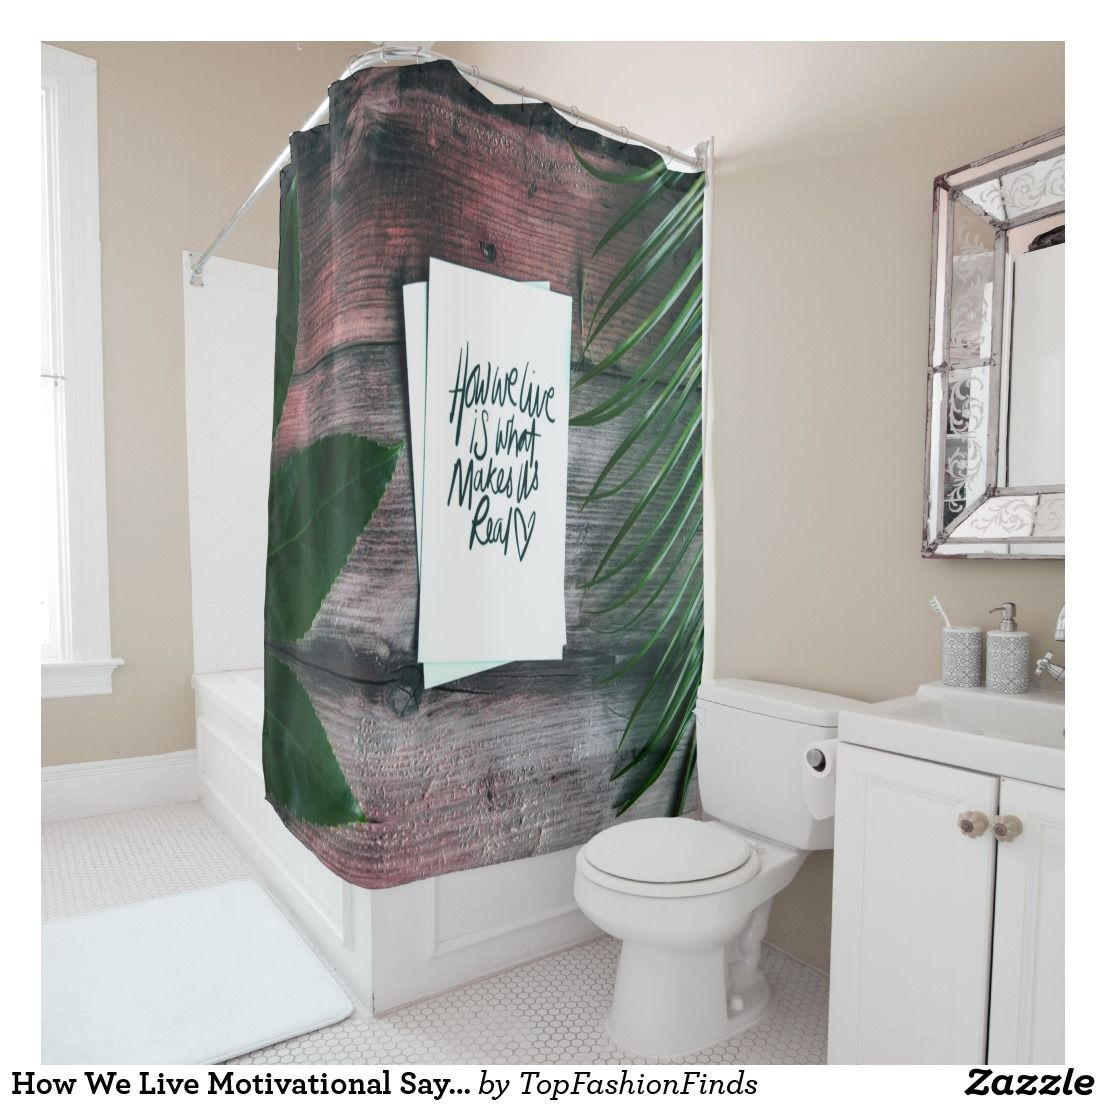 How We Live Motivational Saying Inspirational Shower Curtain Zazzle Com With Images Shower Curtain Custom Shower Curtains Curtains